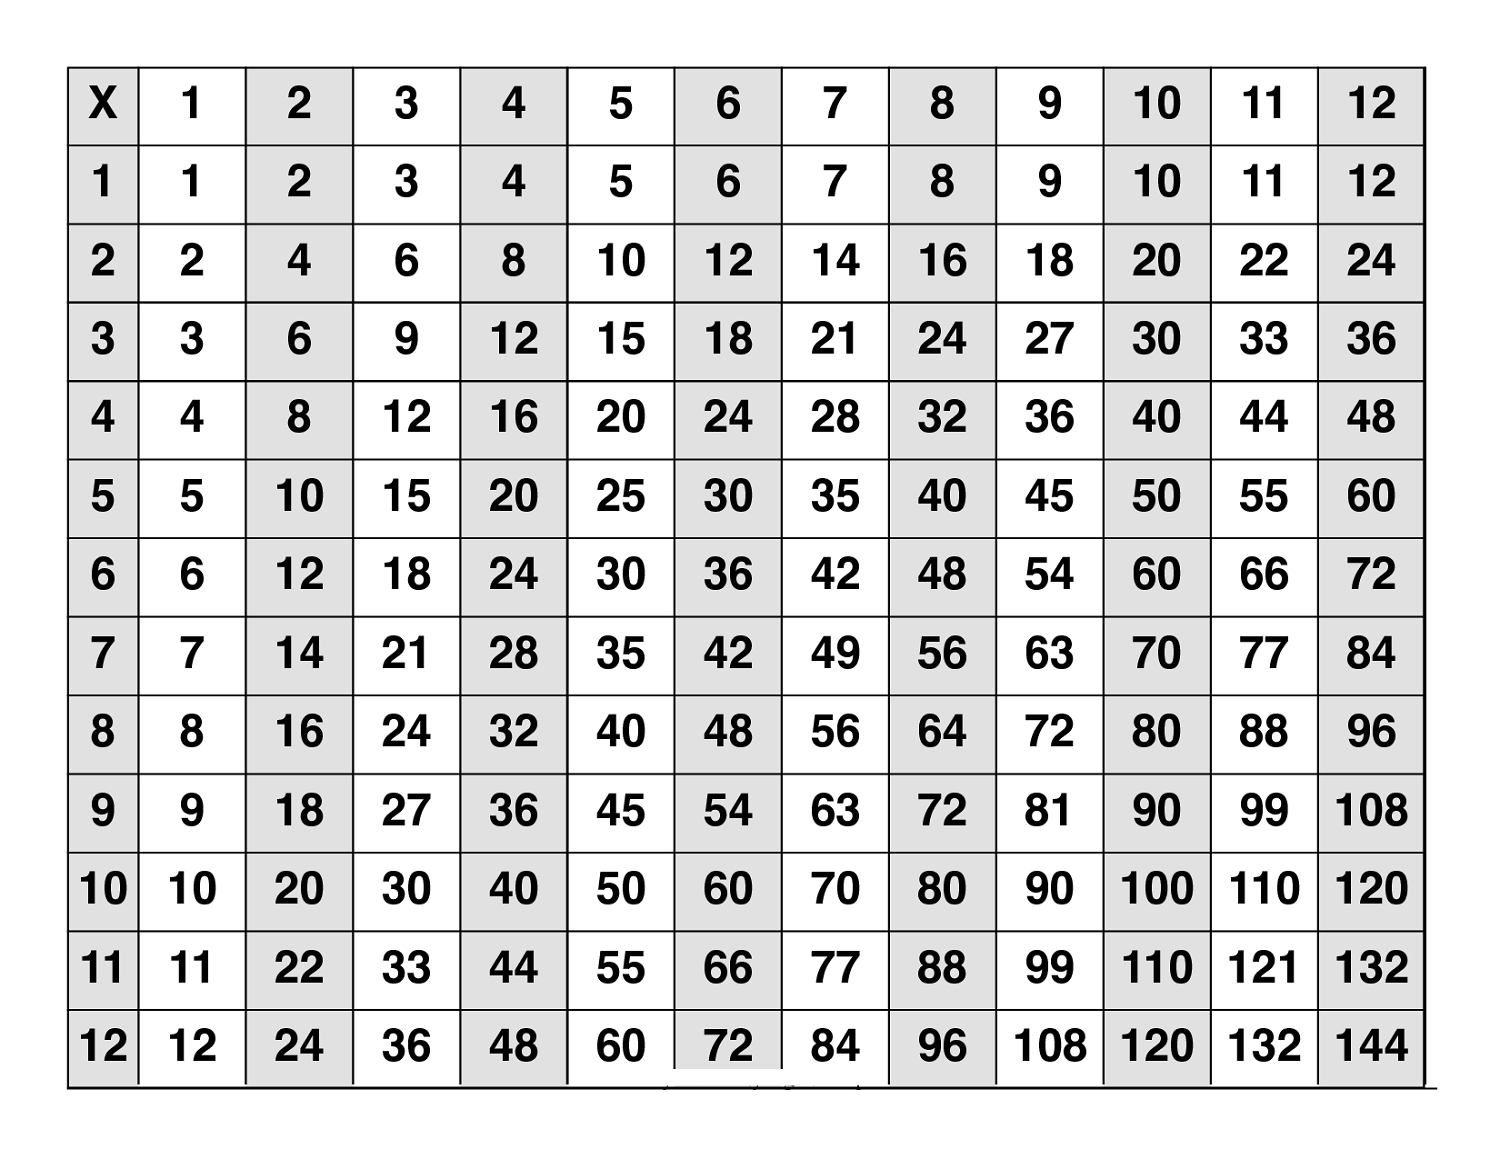 Large Multiplication Table To Train Memory – Multiplication Table